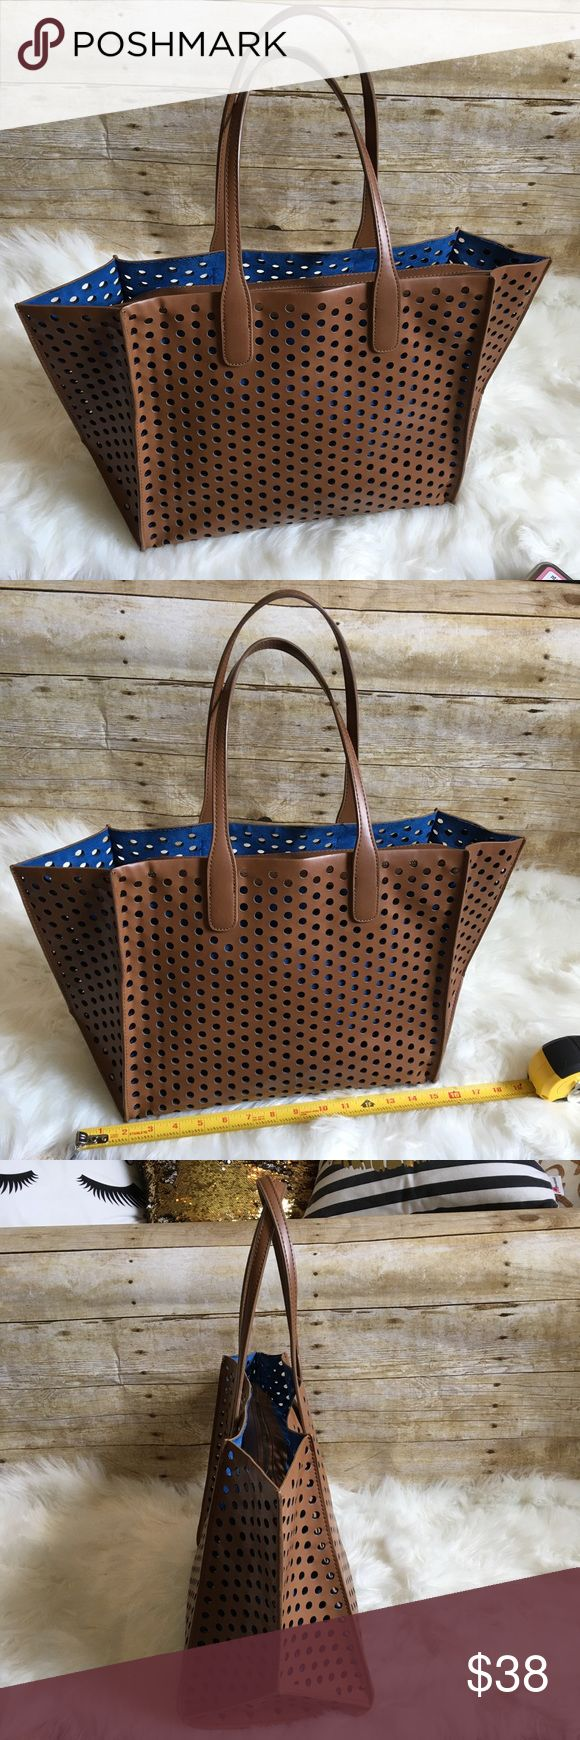 """Zara Geometric tote bag Zara tote bag in good used condition - the inner blue zipper bag is removable. Only flaws I can see is the lifting off the lining on the side and a smaller one on the back (see pics) - This is a good size bag on the larger side. Measures 19"""" x 12""""h x 7.5"""" Zara Bags Totes"""